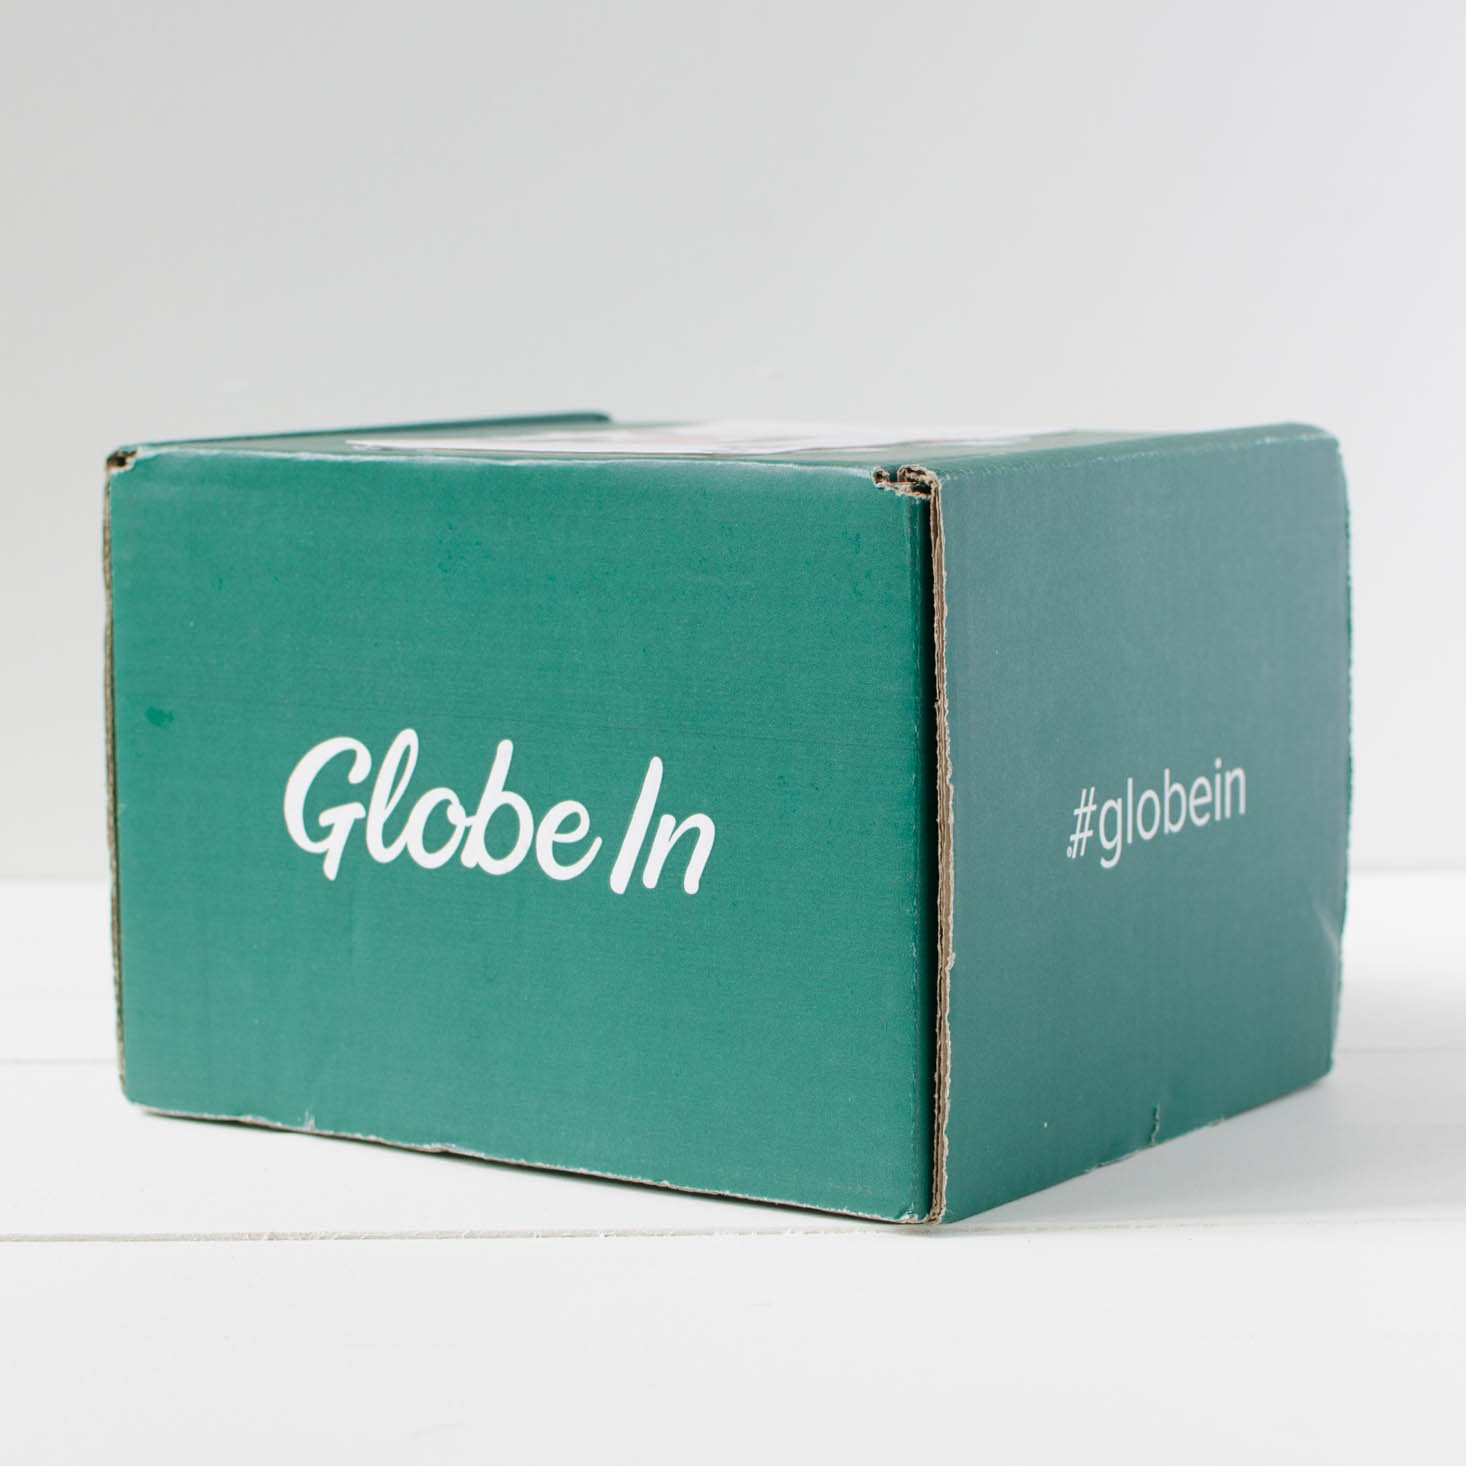 globe-in-benefit-basket-september-2016-001